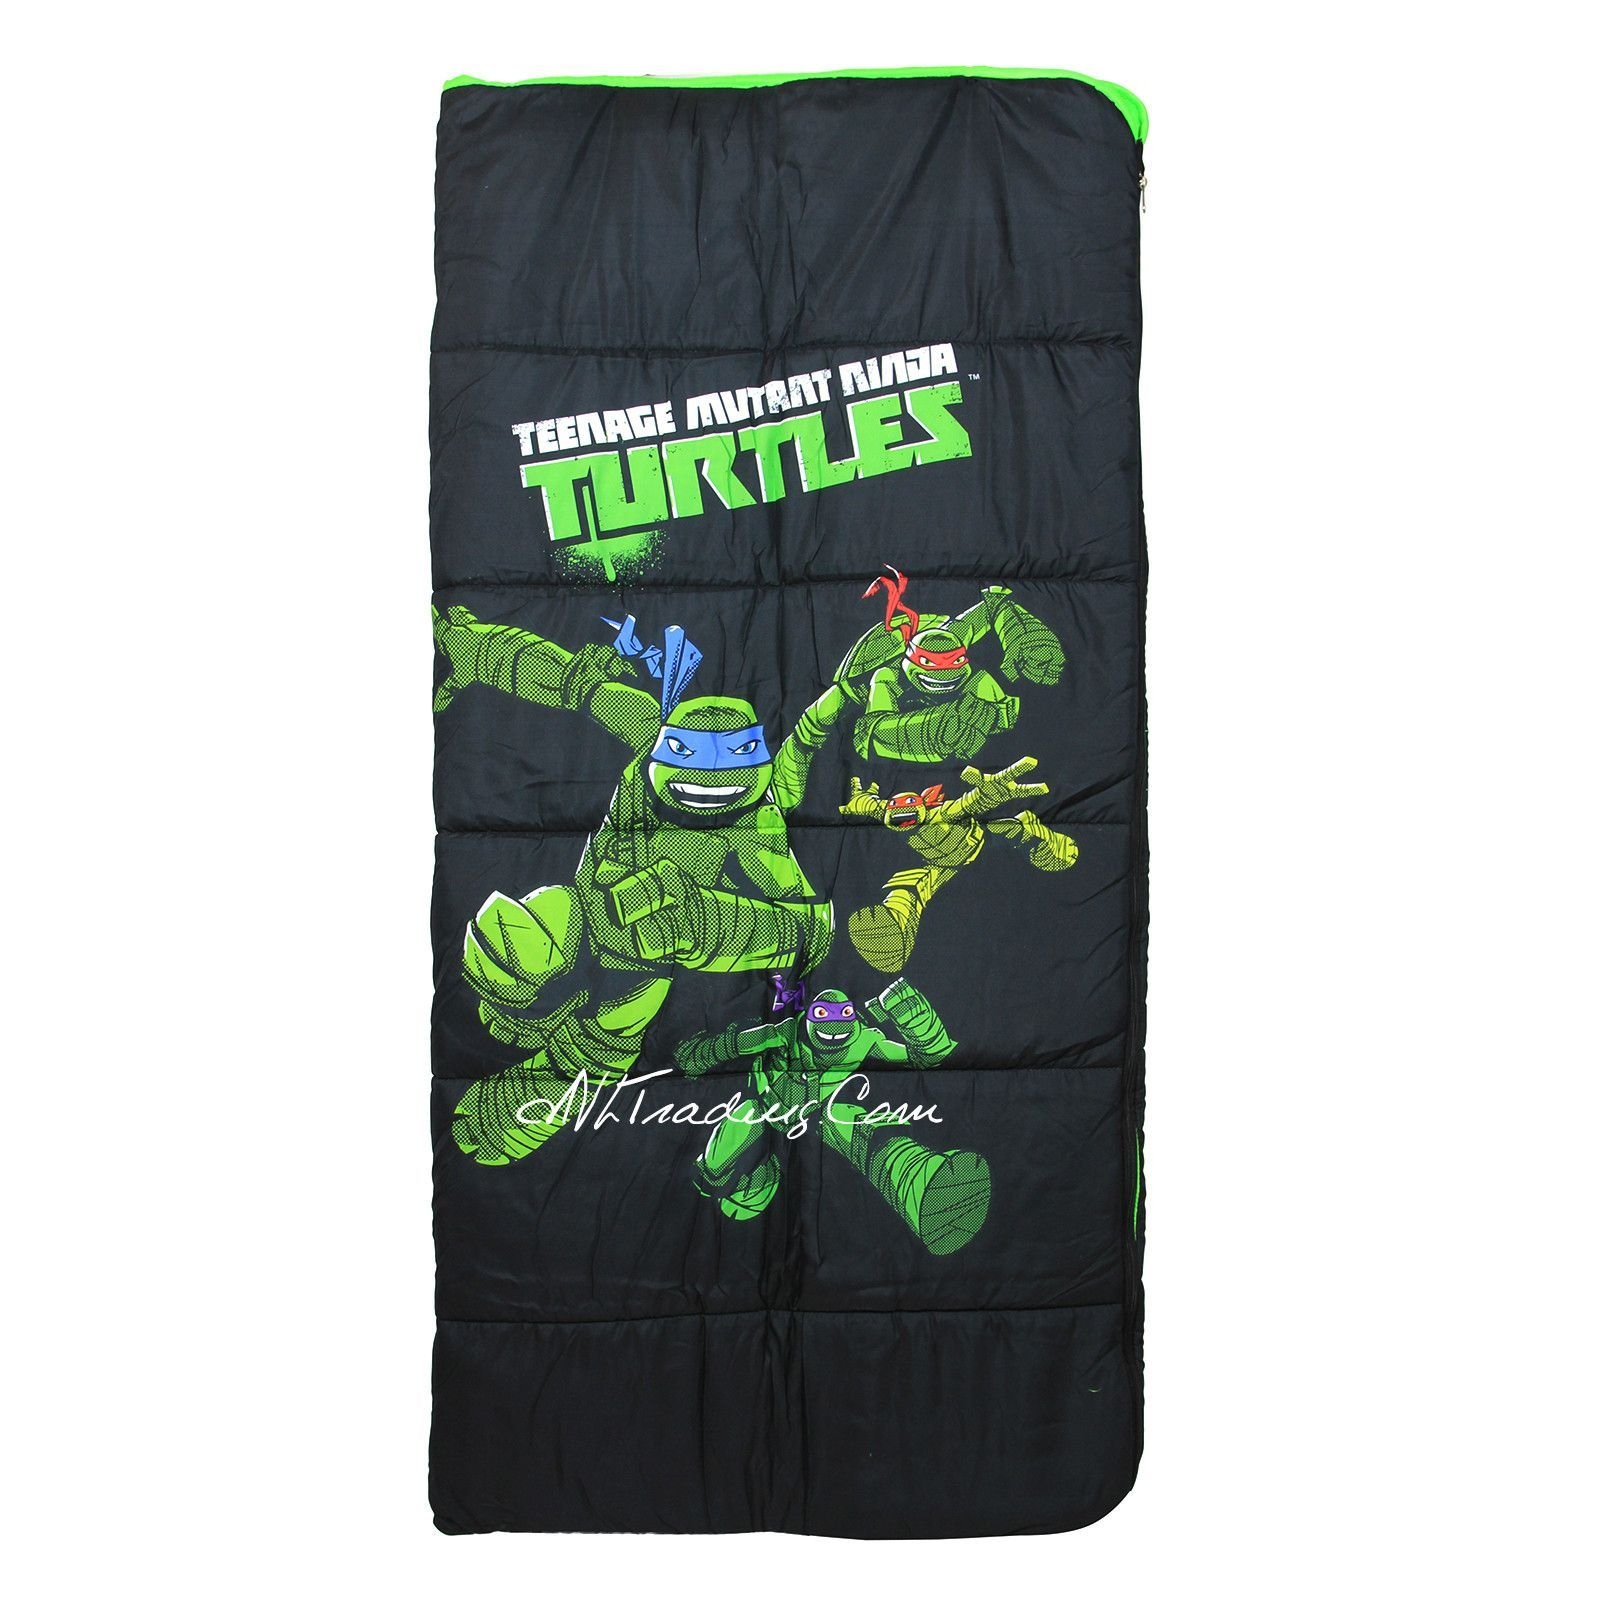 Teenage Mutant Ninja Turtle Tmnt Youth Sleeping Bag Full